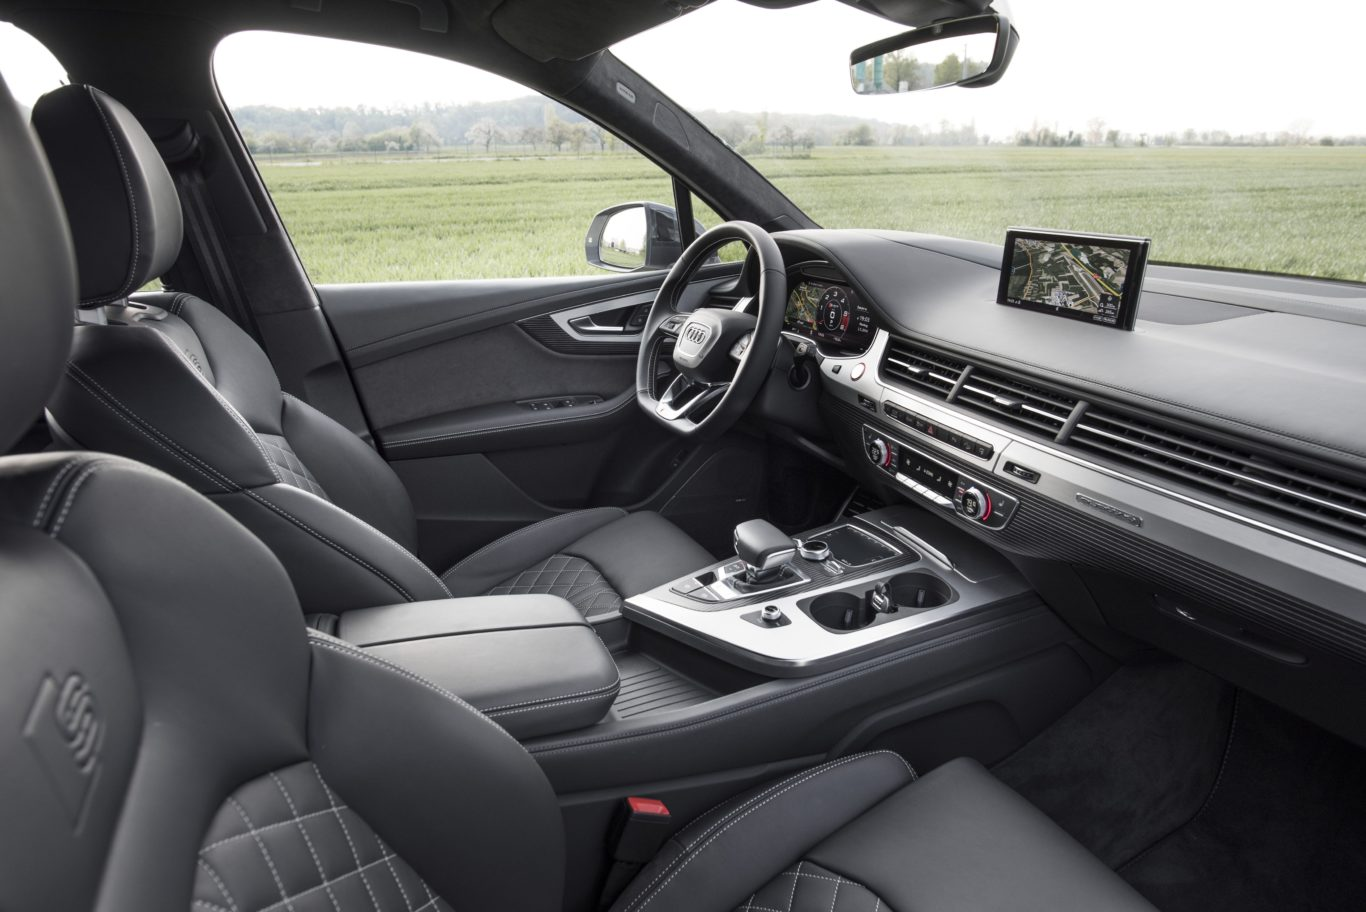 The interior of the SQ7 is solidly made